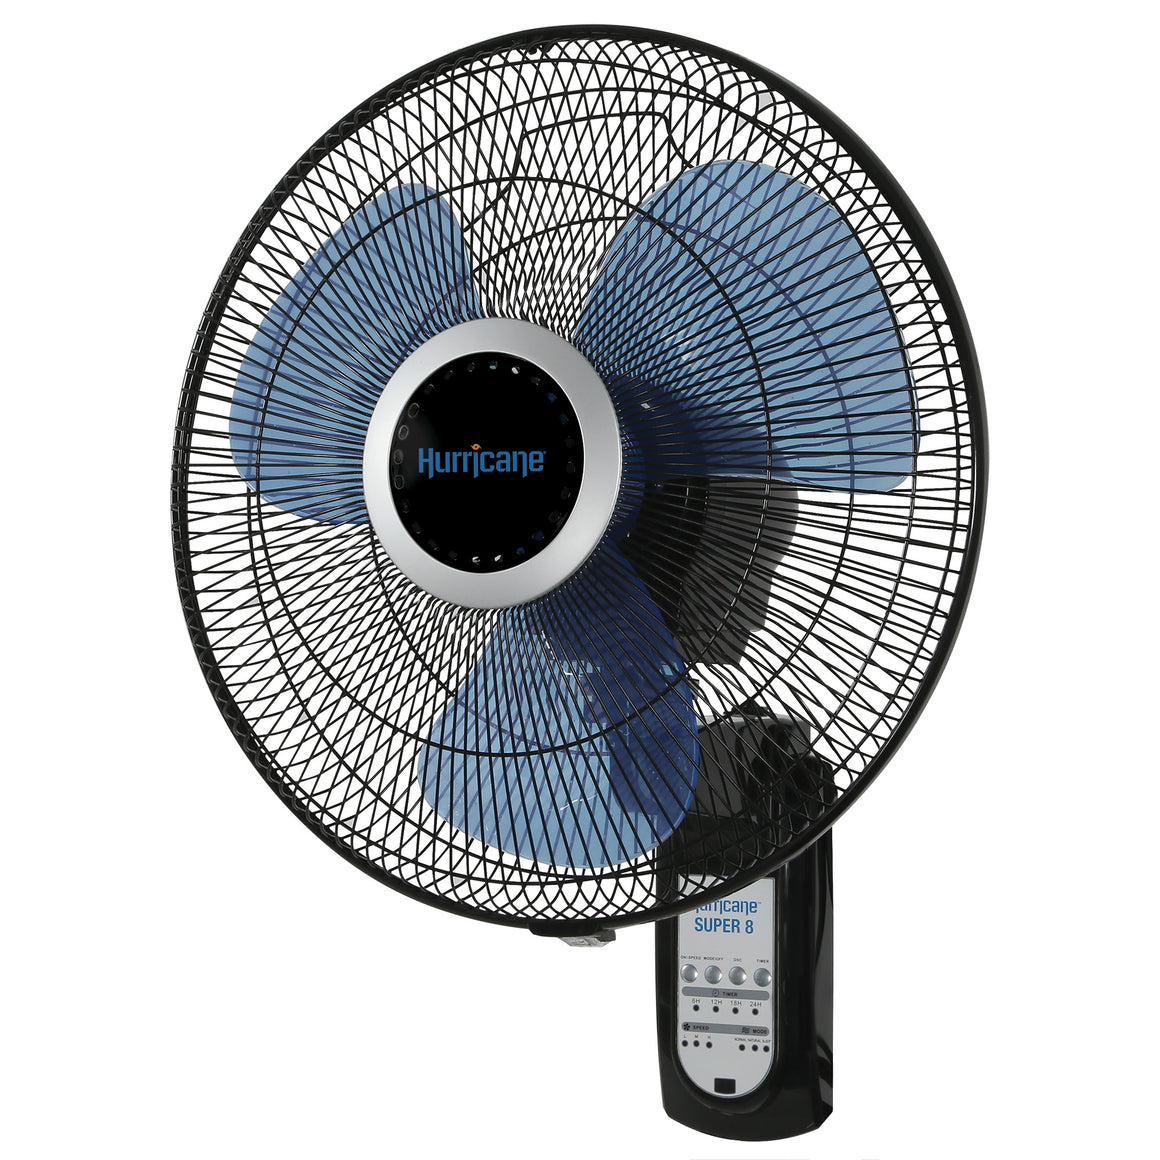 Hurricane Super 8 Oscillating Digital Wall Mount Fan 16""